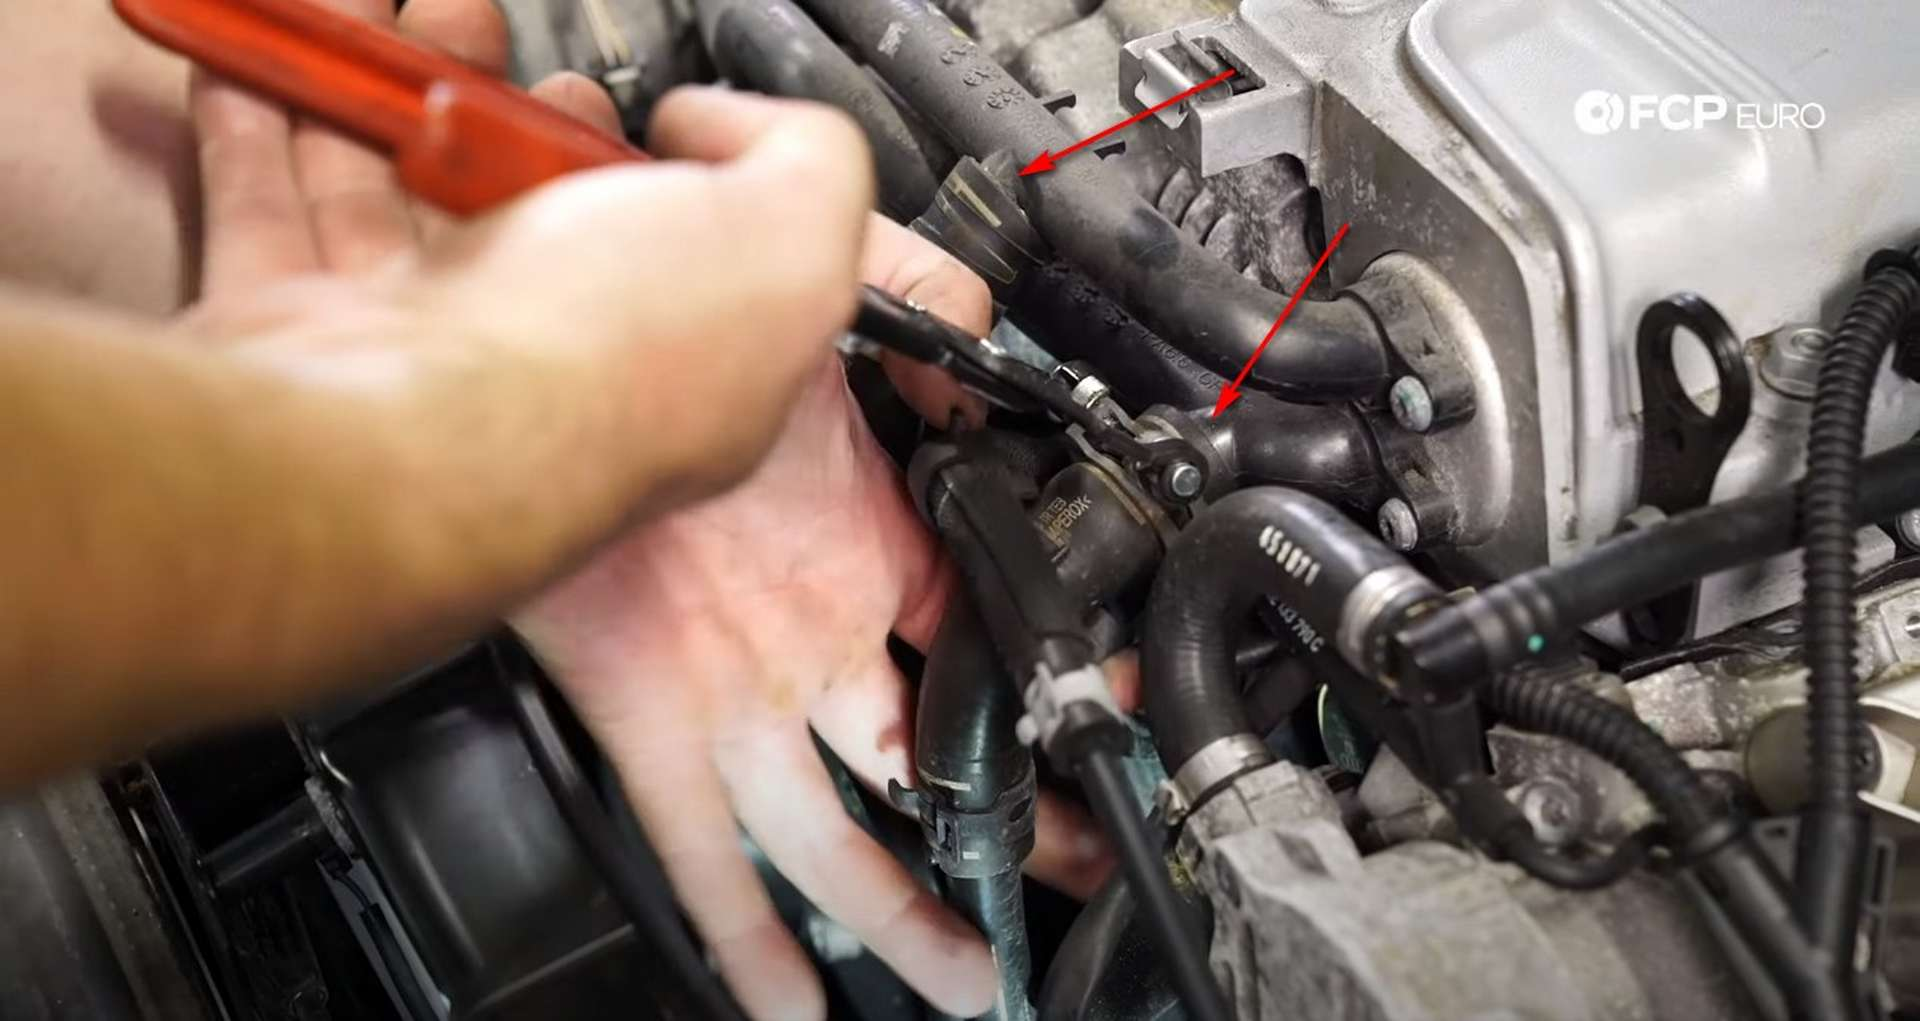 DIY Audi B8.5 Water Pump and Thermostat Replacement removing the coolant lines from the supercharger